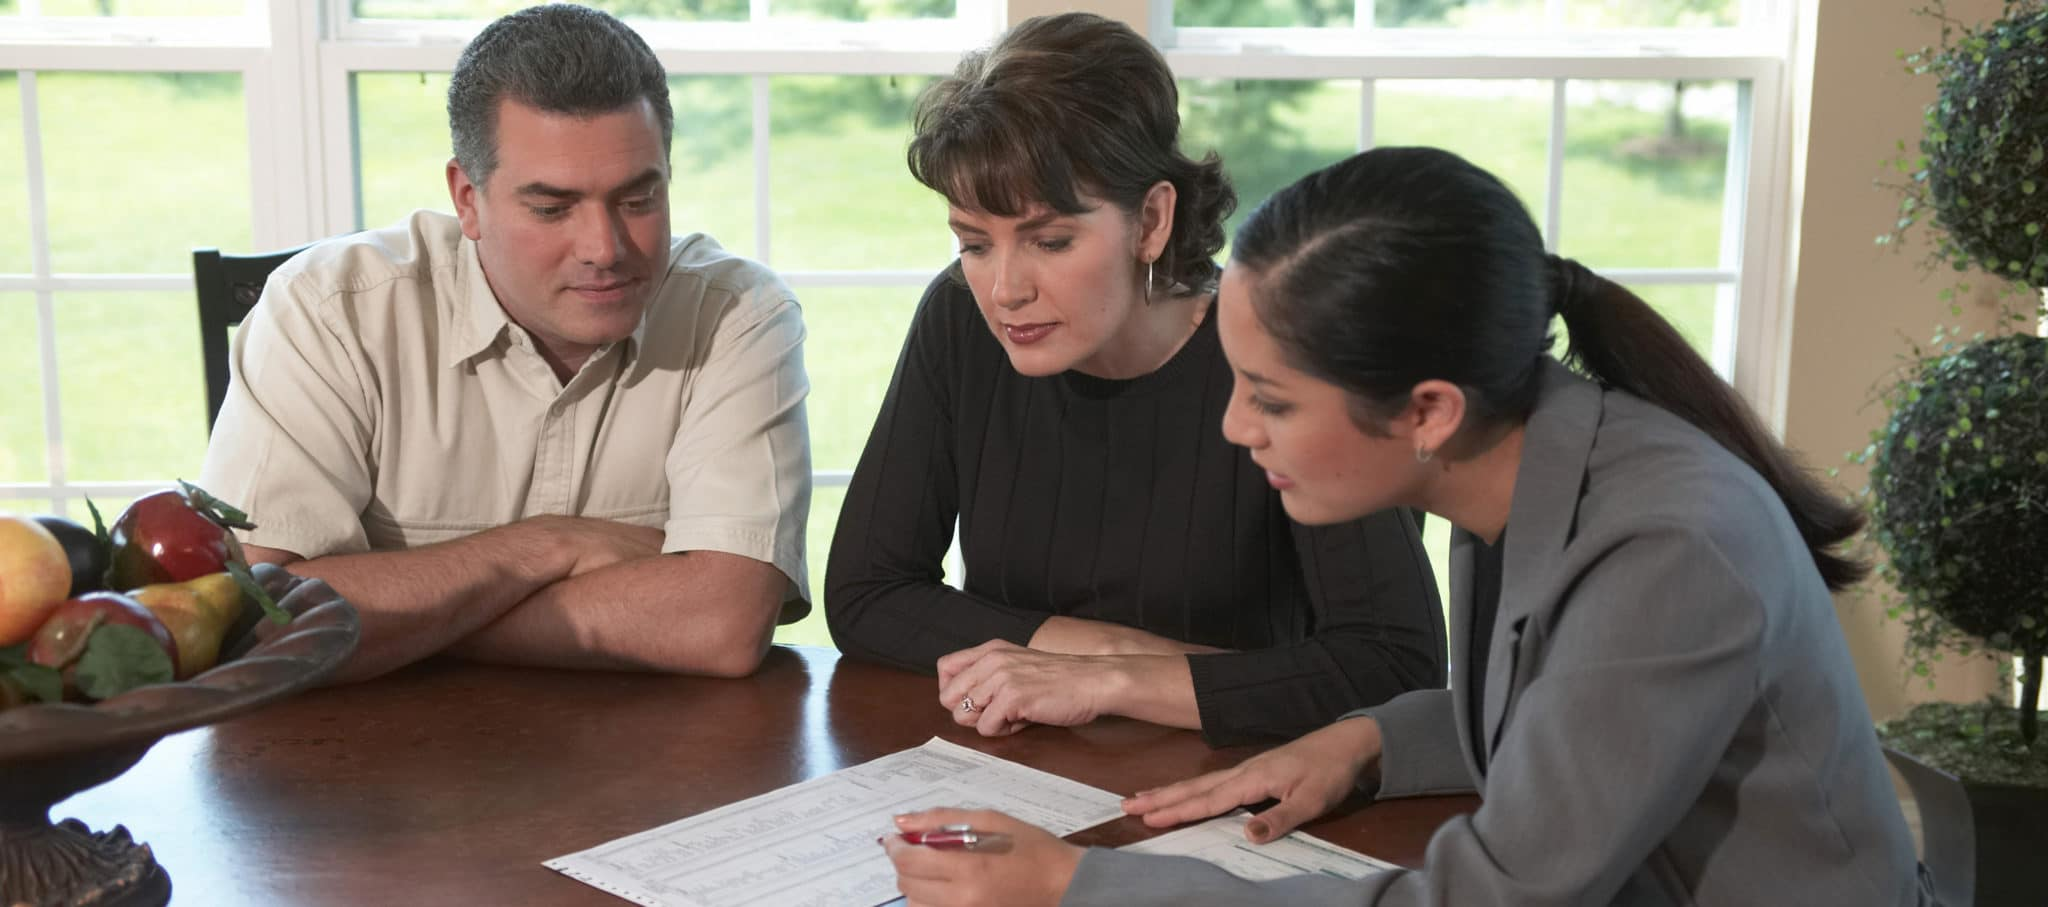 company rep sitting with a couple and going over a document